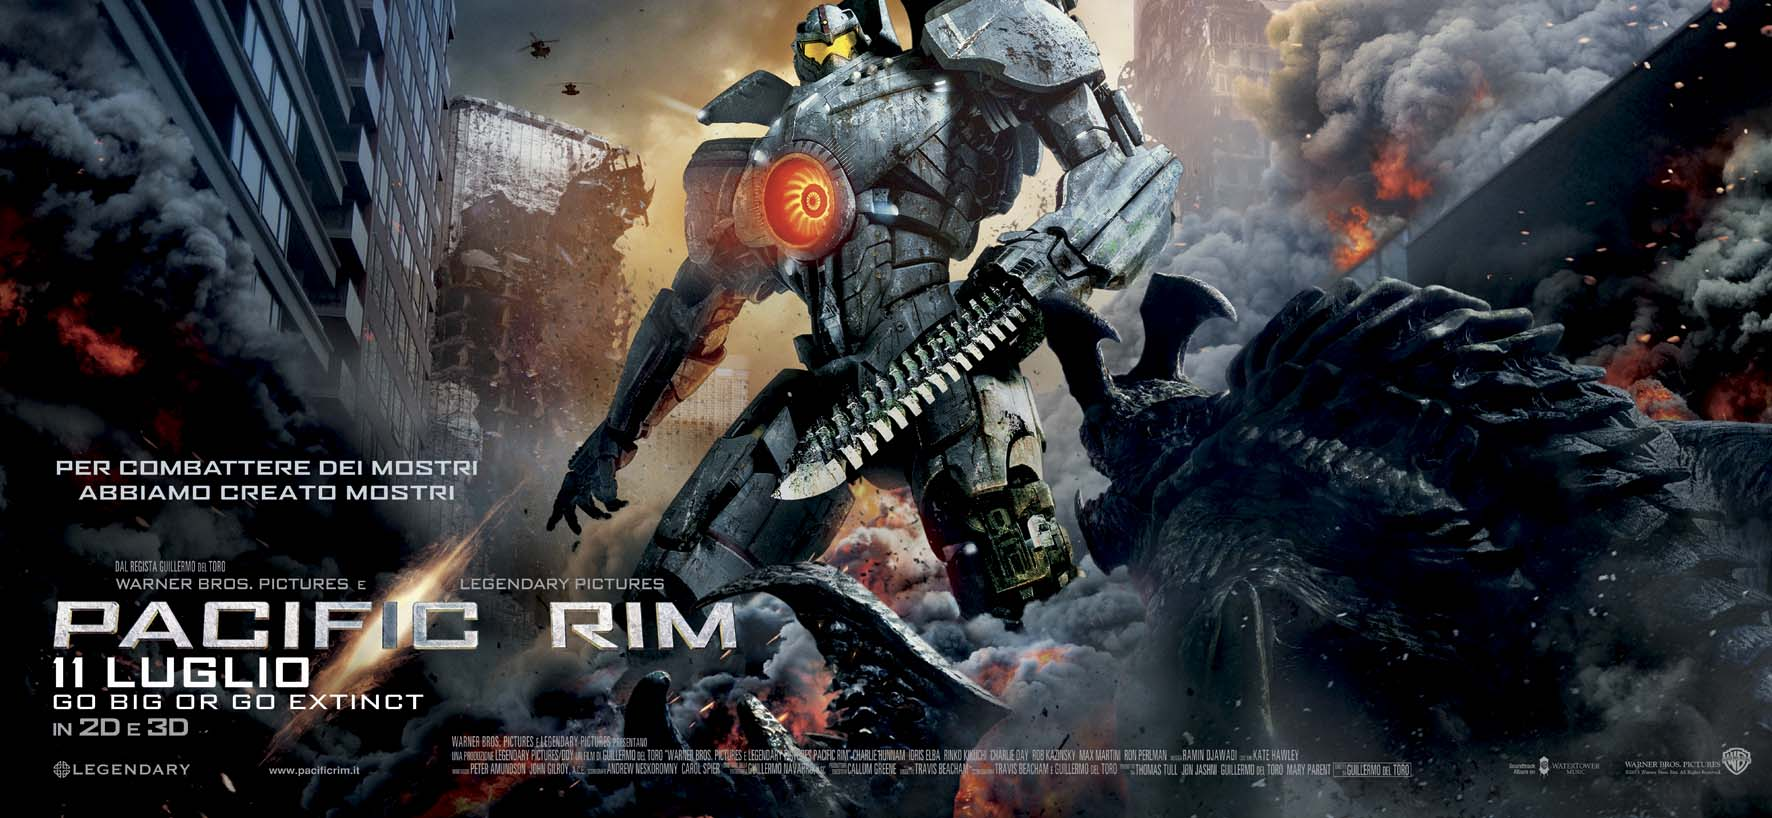 pacific rim artwork 4